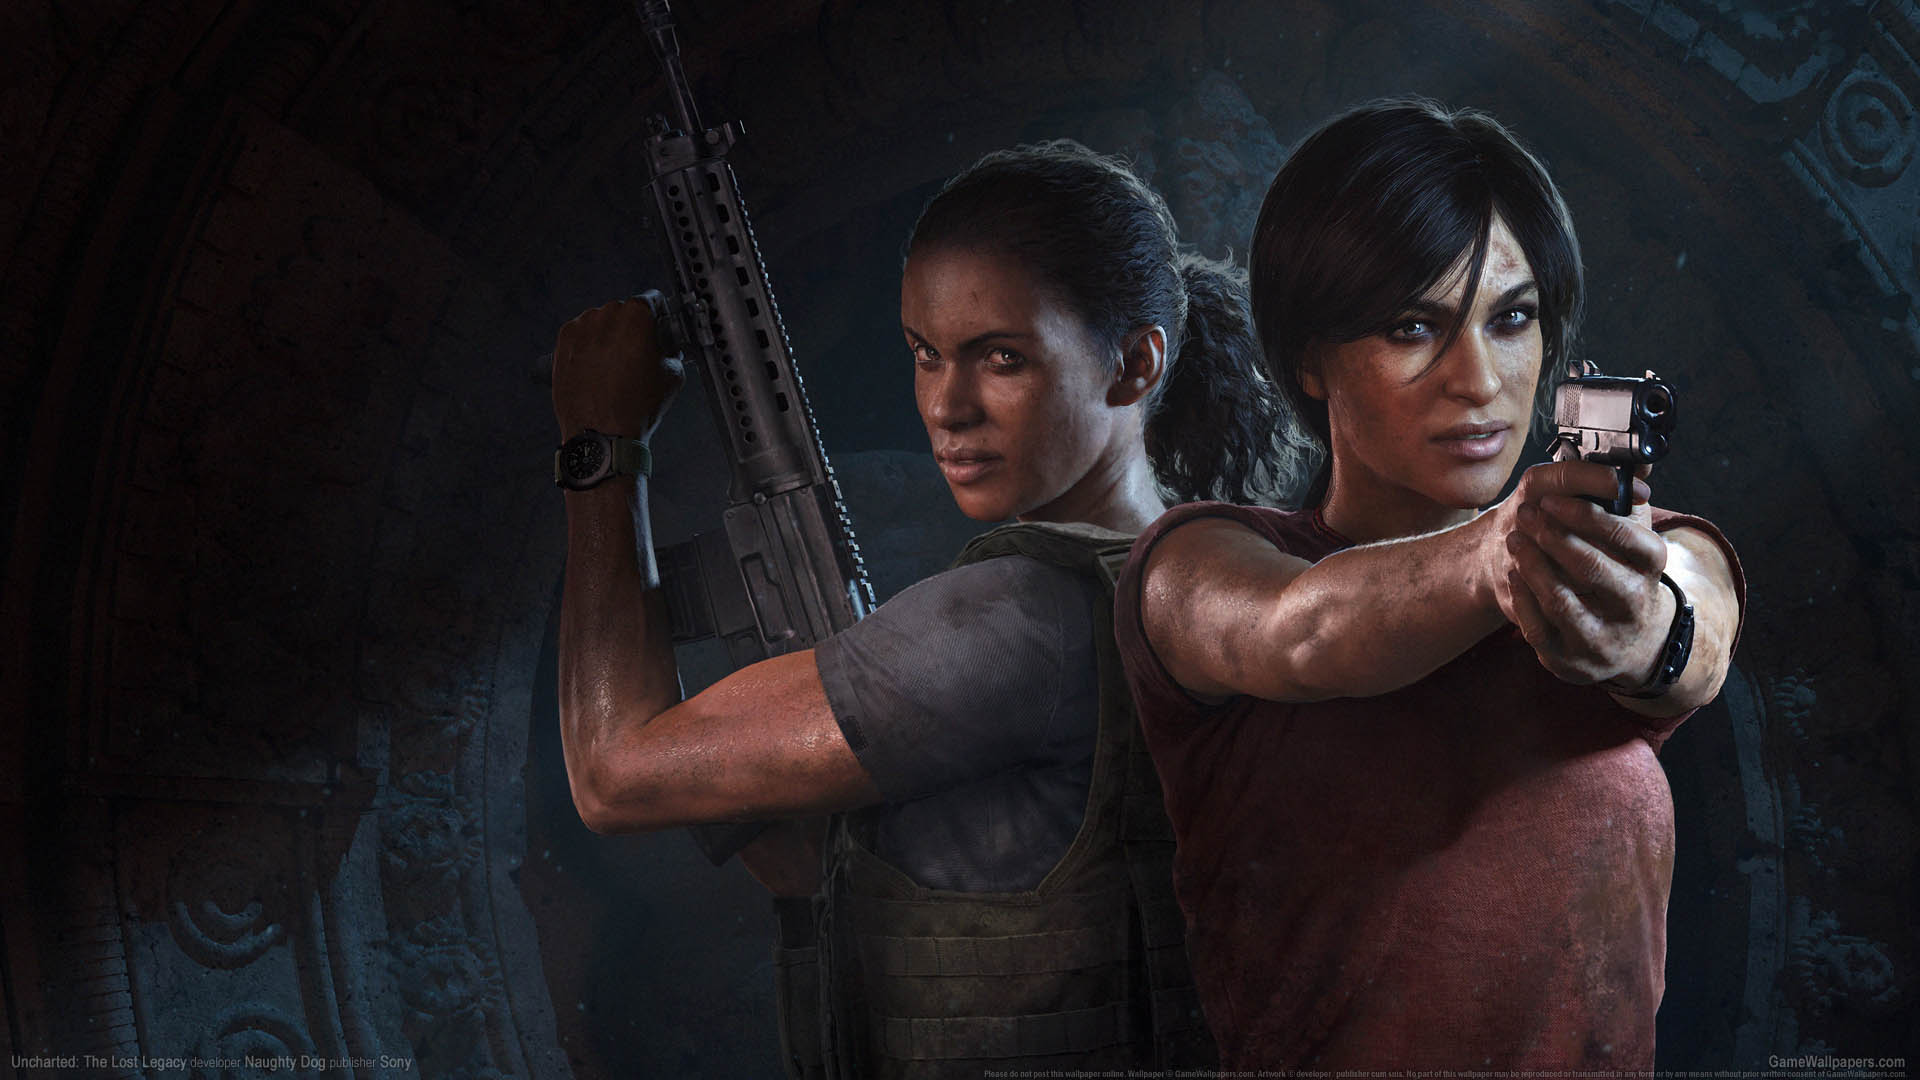 Uncharted: The Lost Legacy achtergrond 01 1920x1080